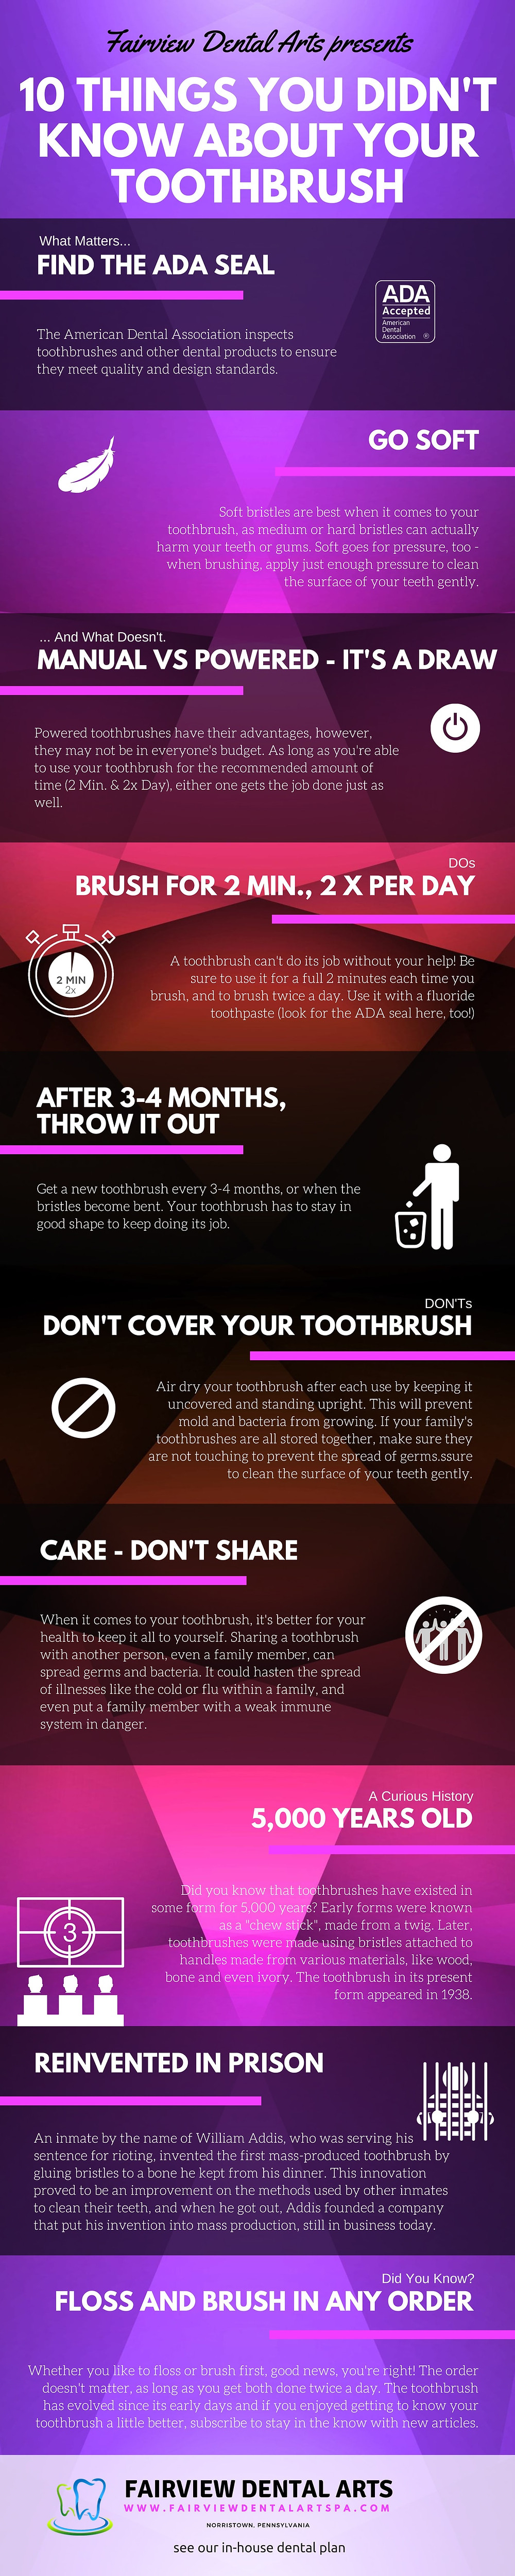 10 Things You Didnt Know About Your Toothbrush Infographic by Fairview Dental Arts